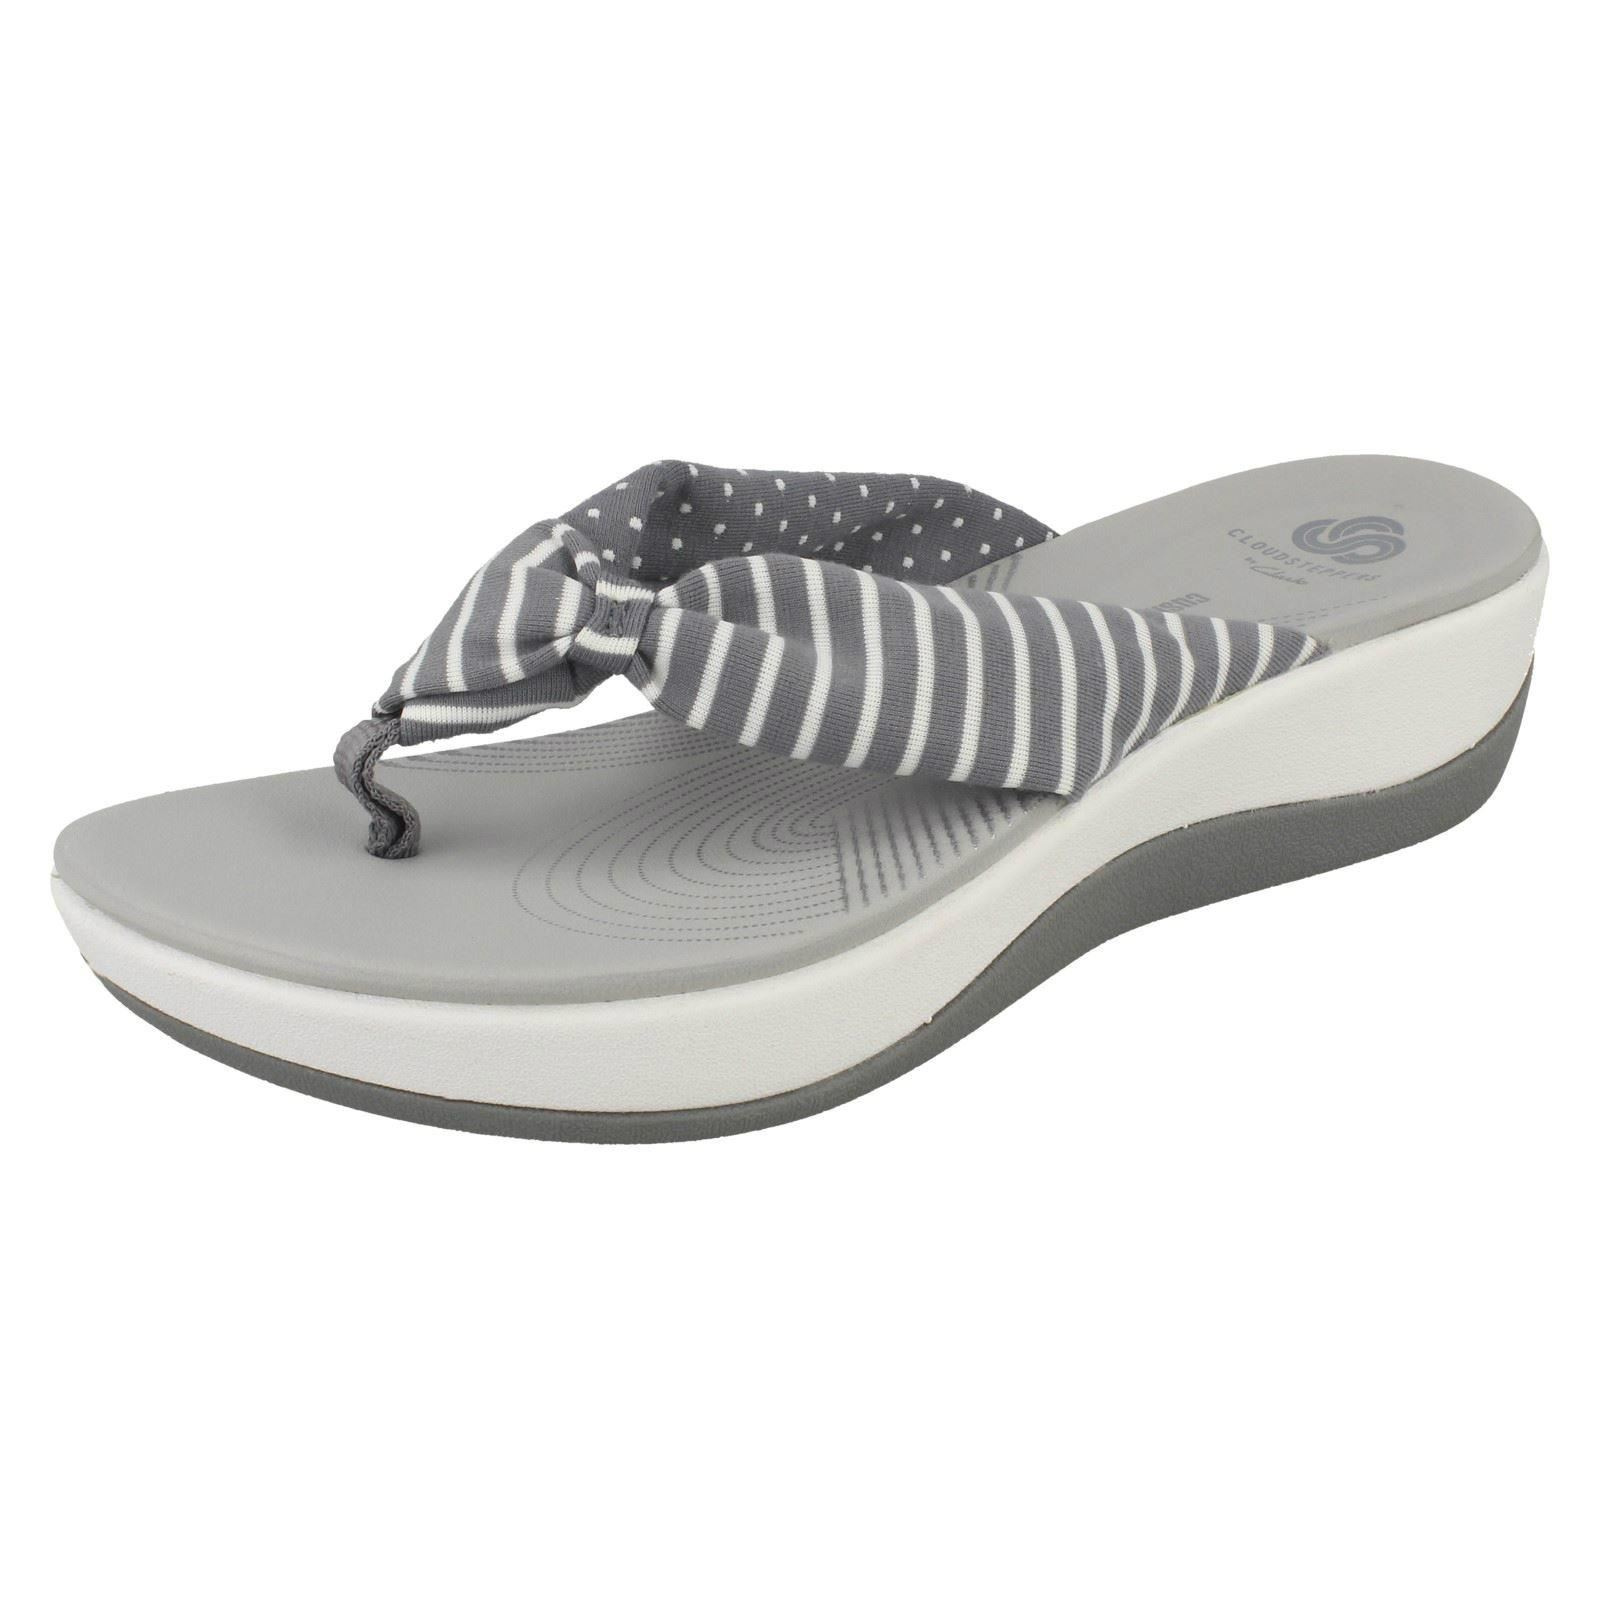 de440522e20 Clarks Arla Glison - Grey Print (textile) Womens Sandals 7 UK. About this  product. Picture 1 of 10  Picture 2 of 10 ...